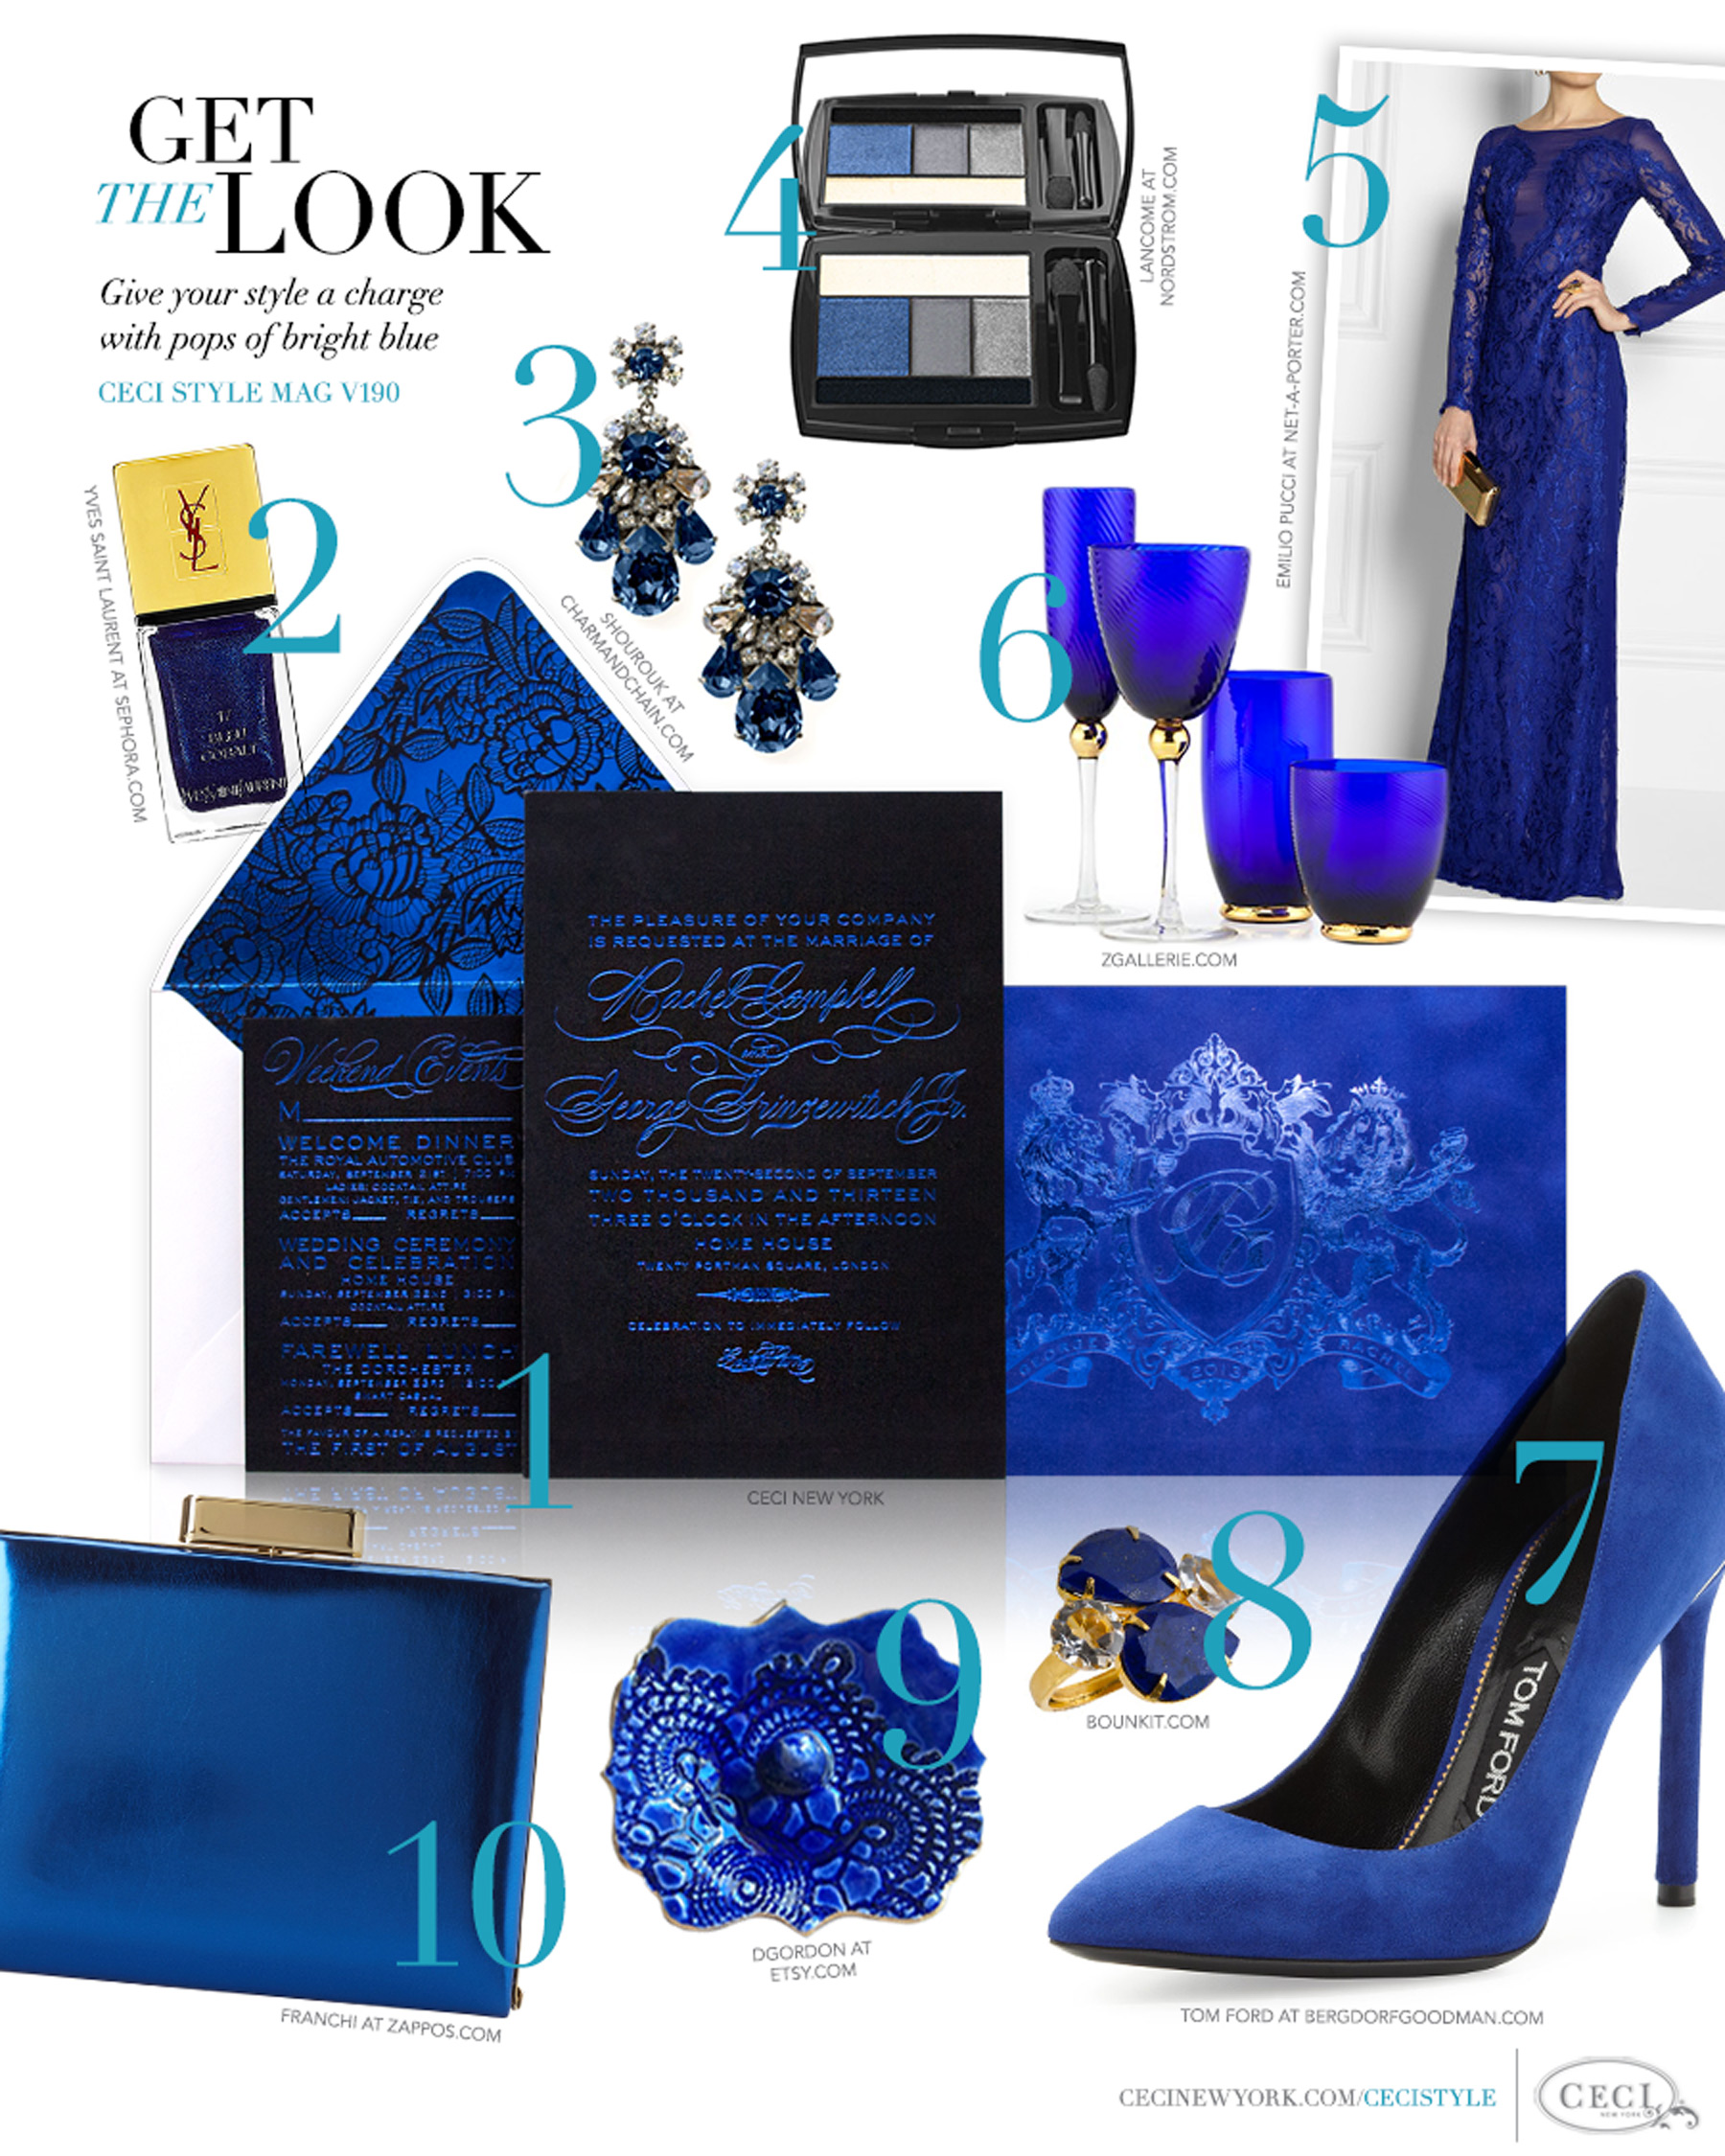 CeciStyle Magazine v190: Get The Look - Electric Blue - Give your style a charge with pops of bright blue - Luxury Wedding Invitations by Ceci New York - shourouk, jewelry, yves saint laurent, beauty, ceci new york, invitations, lancome, beauty, emilio pucci, fashion, zgallerie.com, tom ford, shoes, bounkit, etsy.com, franchi, handbags